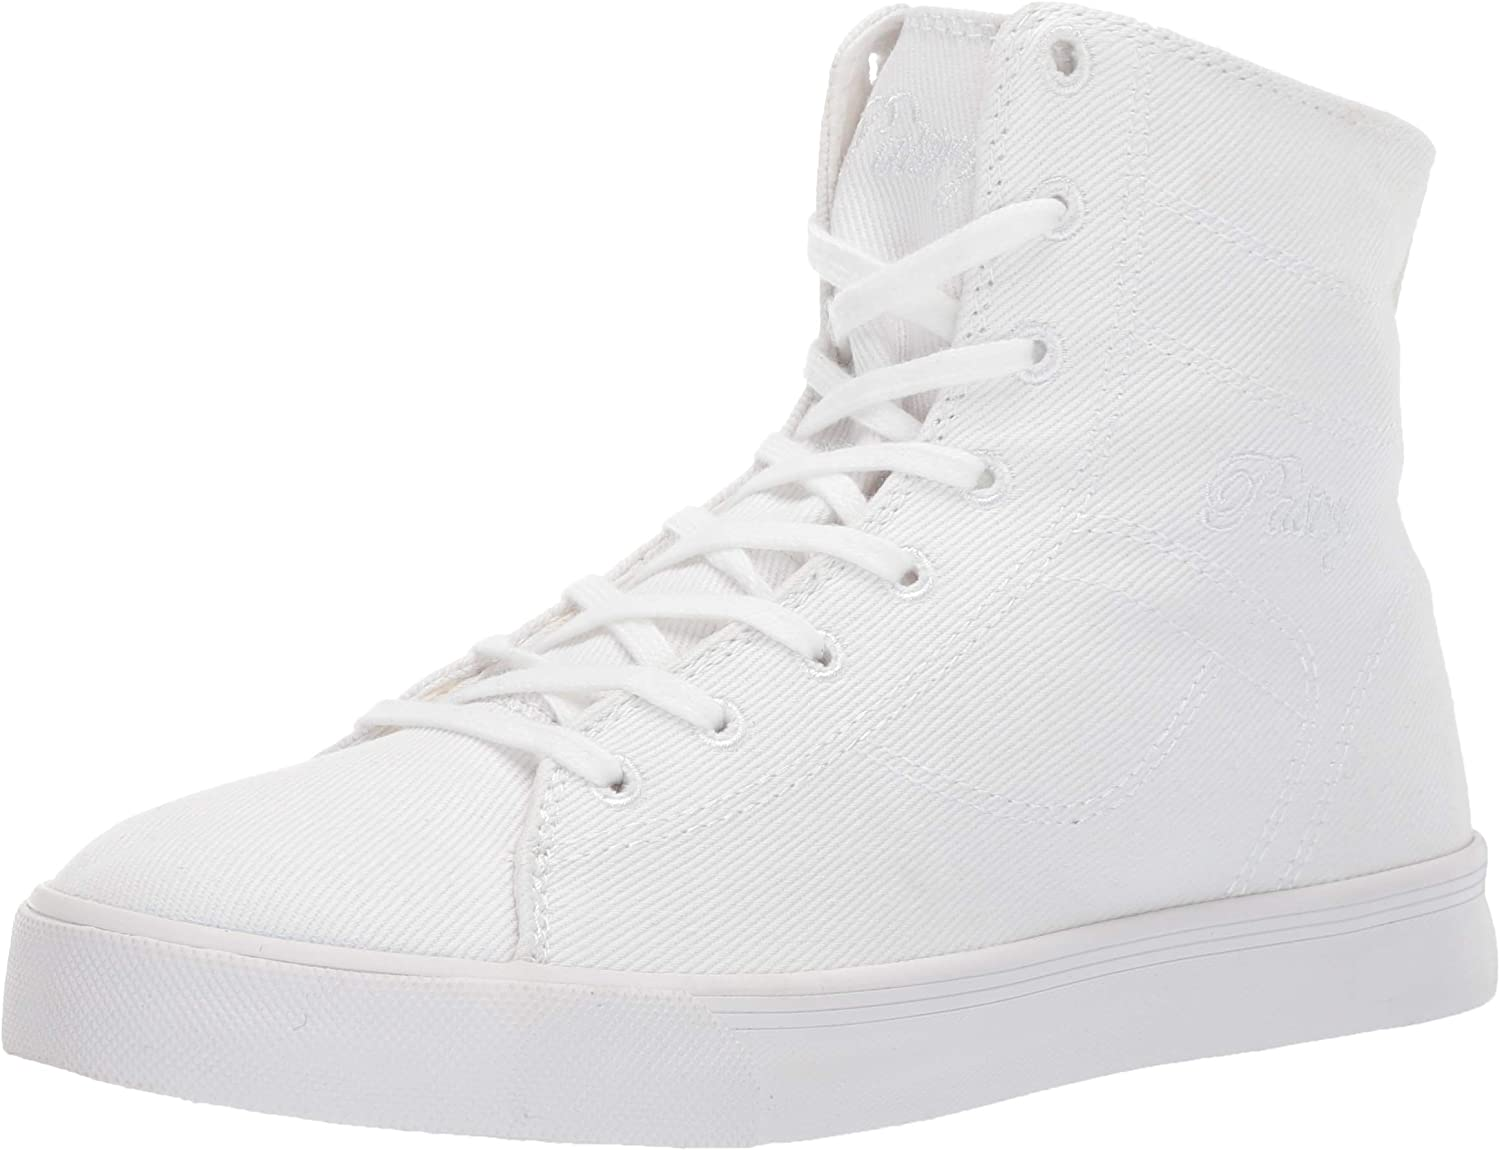 Pastry Unisex High-Top Fashion Sneakers - Cassatta Style, White